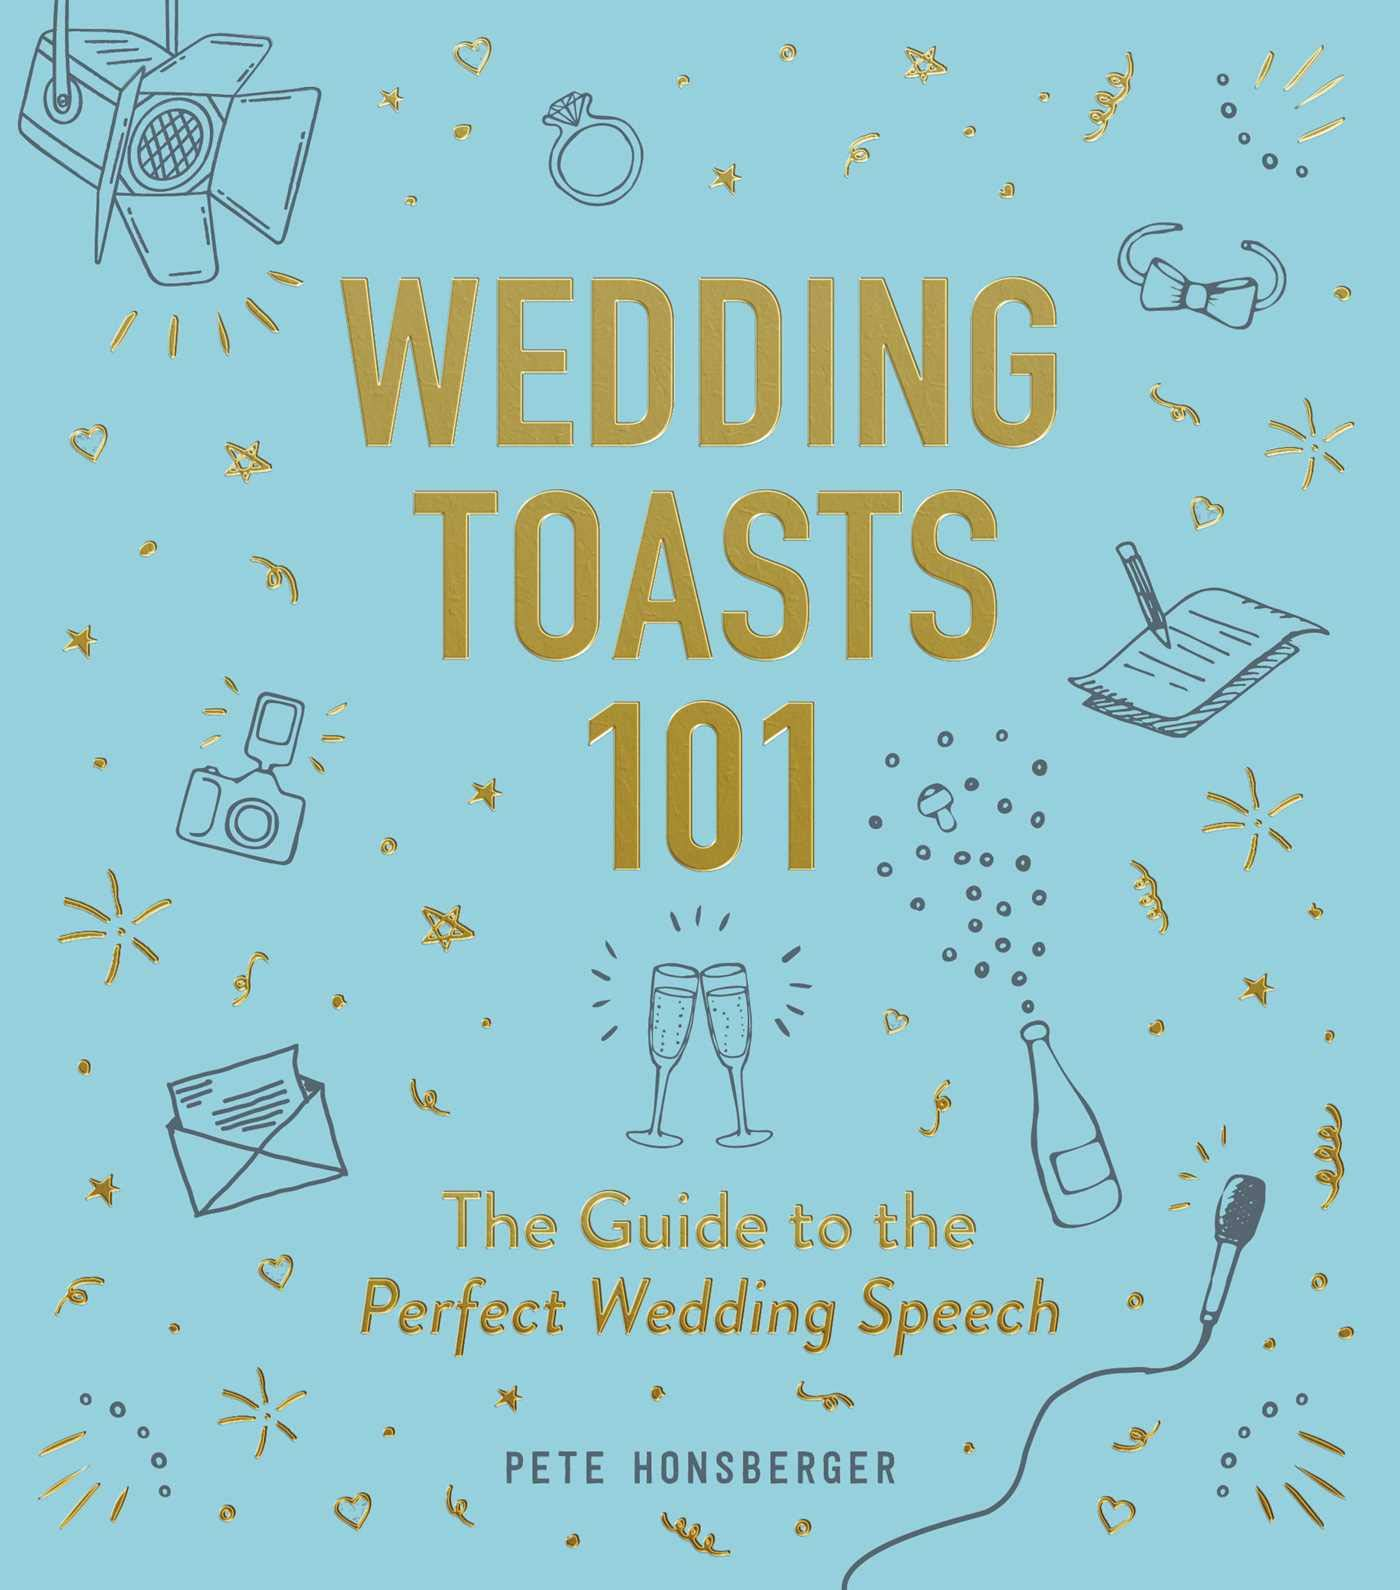 Wedding Toast Speech.Wedding Toasts 101 The Guide To The Perfect Wedding Speech Pete